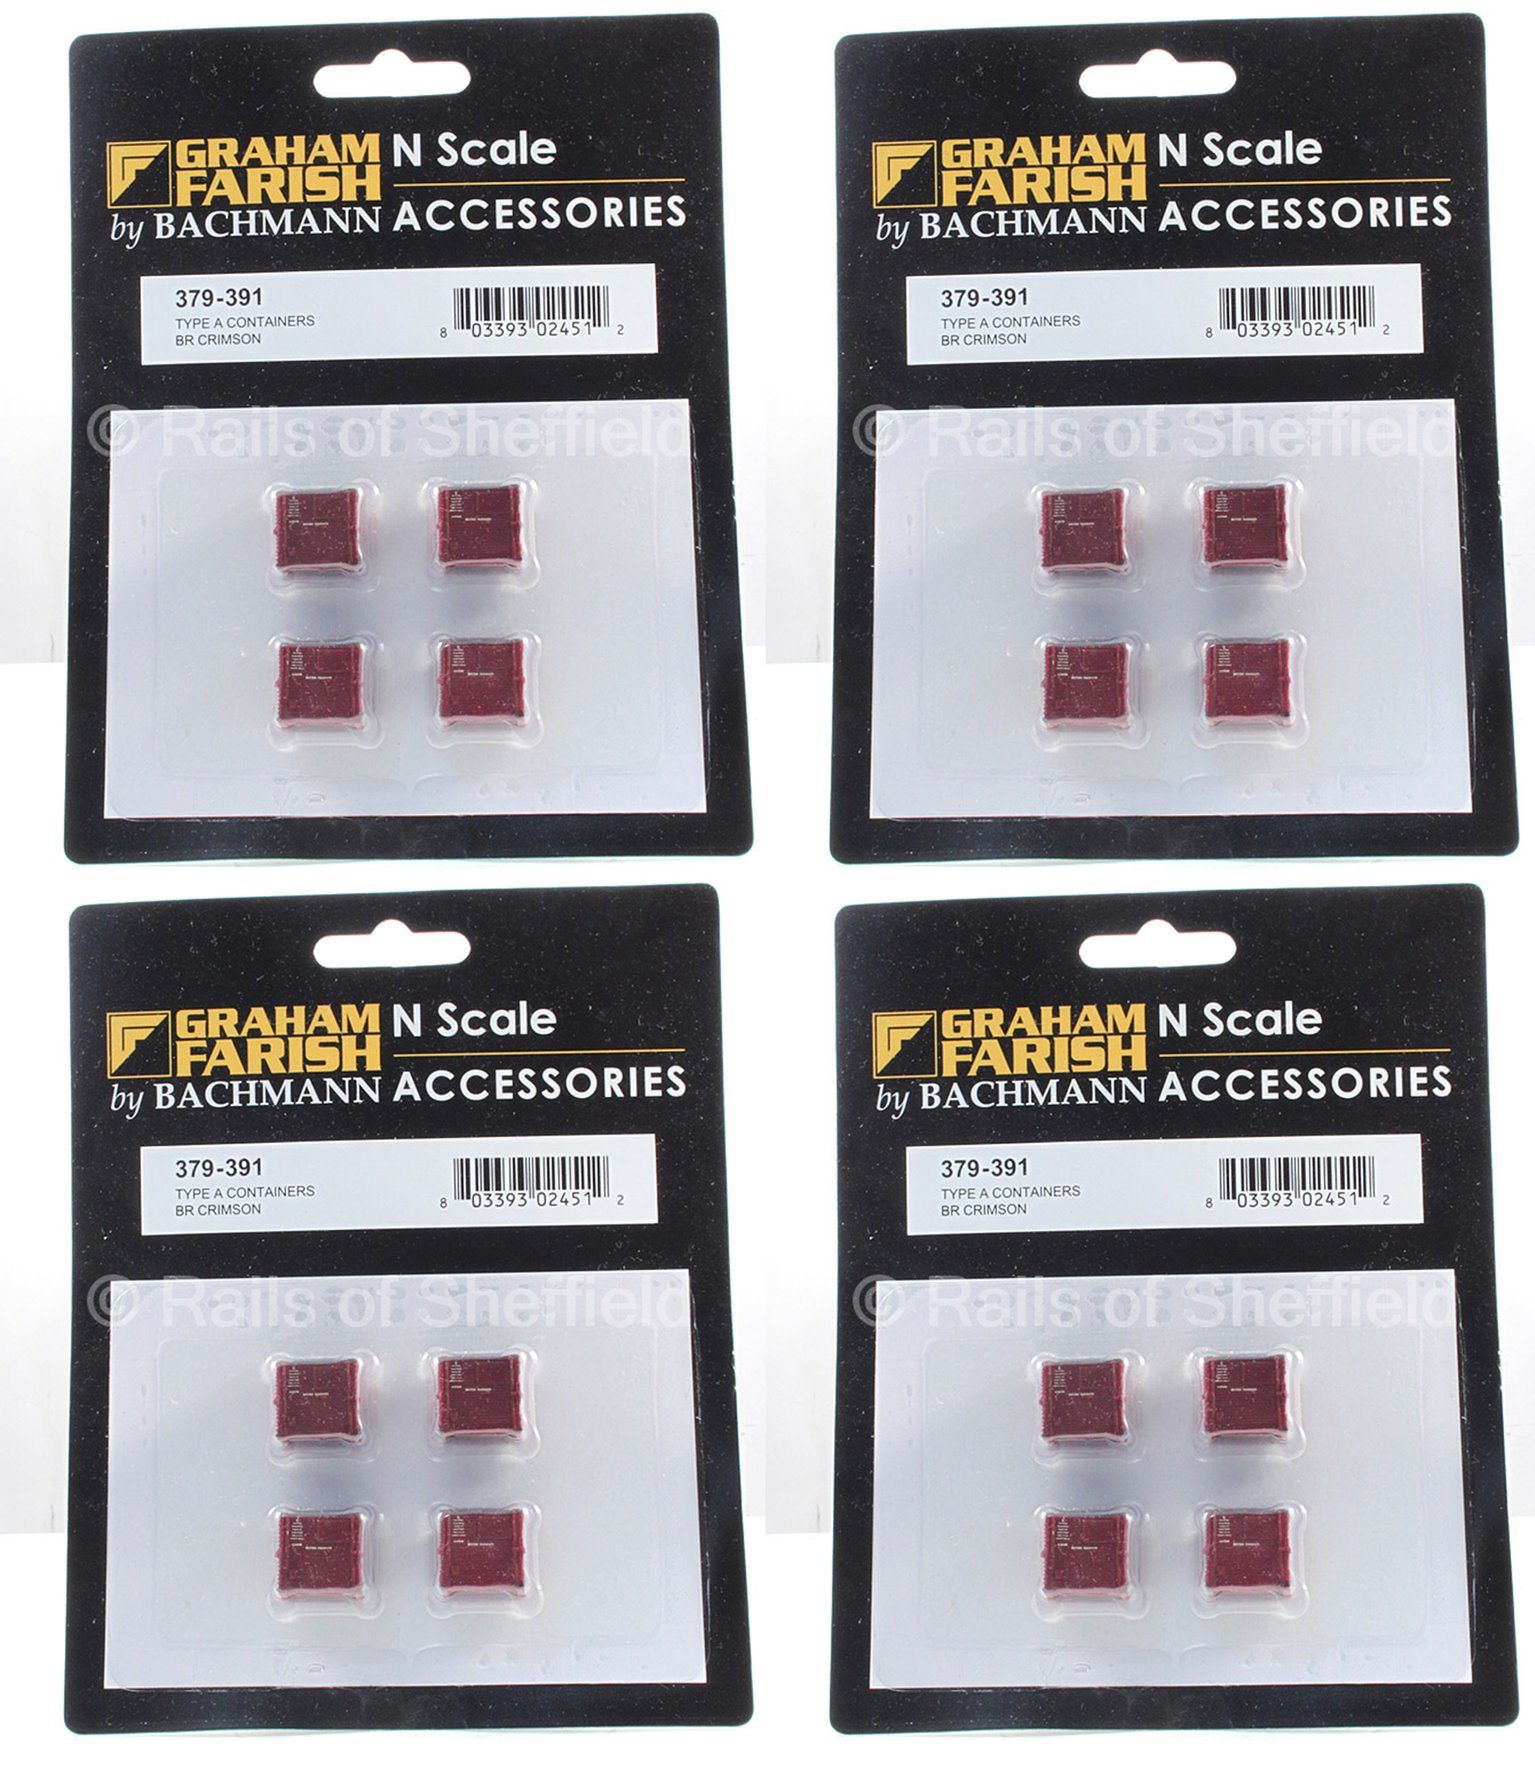 4 Packs of 4 Type A Containers in BR Crimson (16 in total)